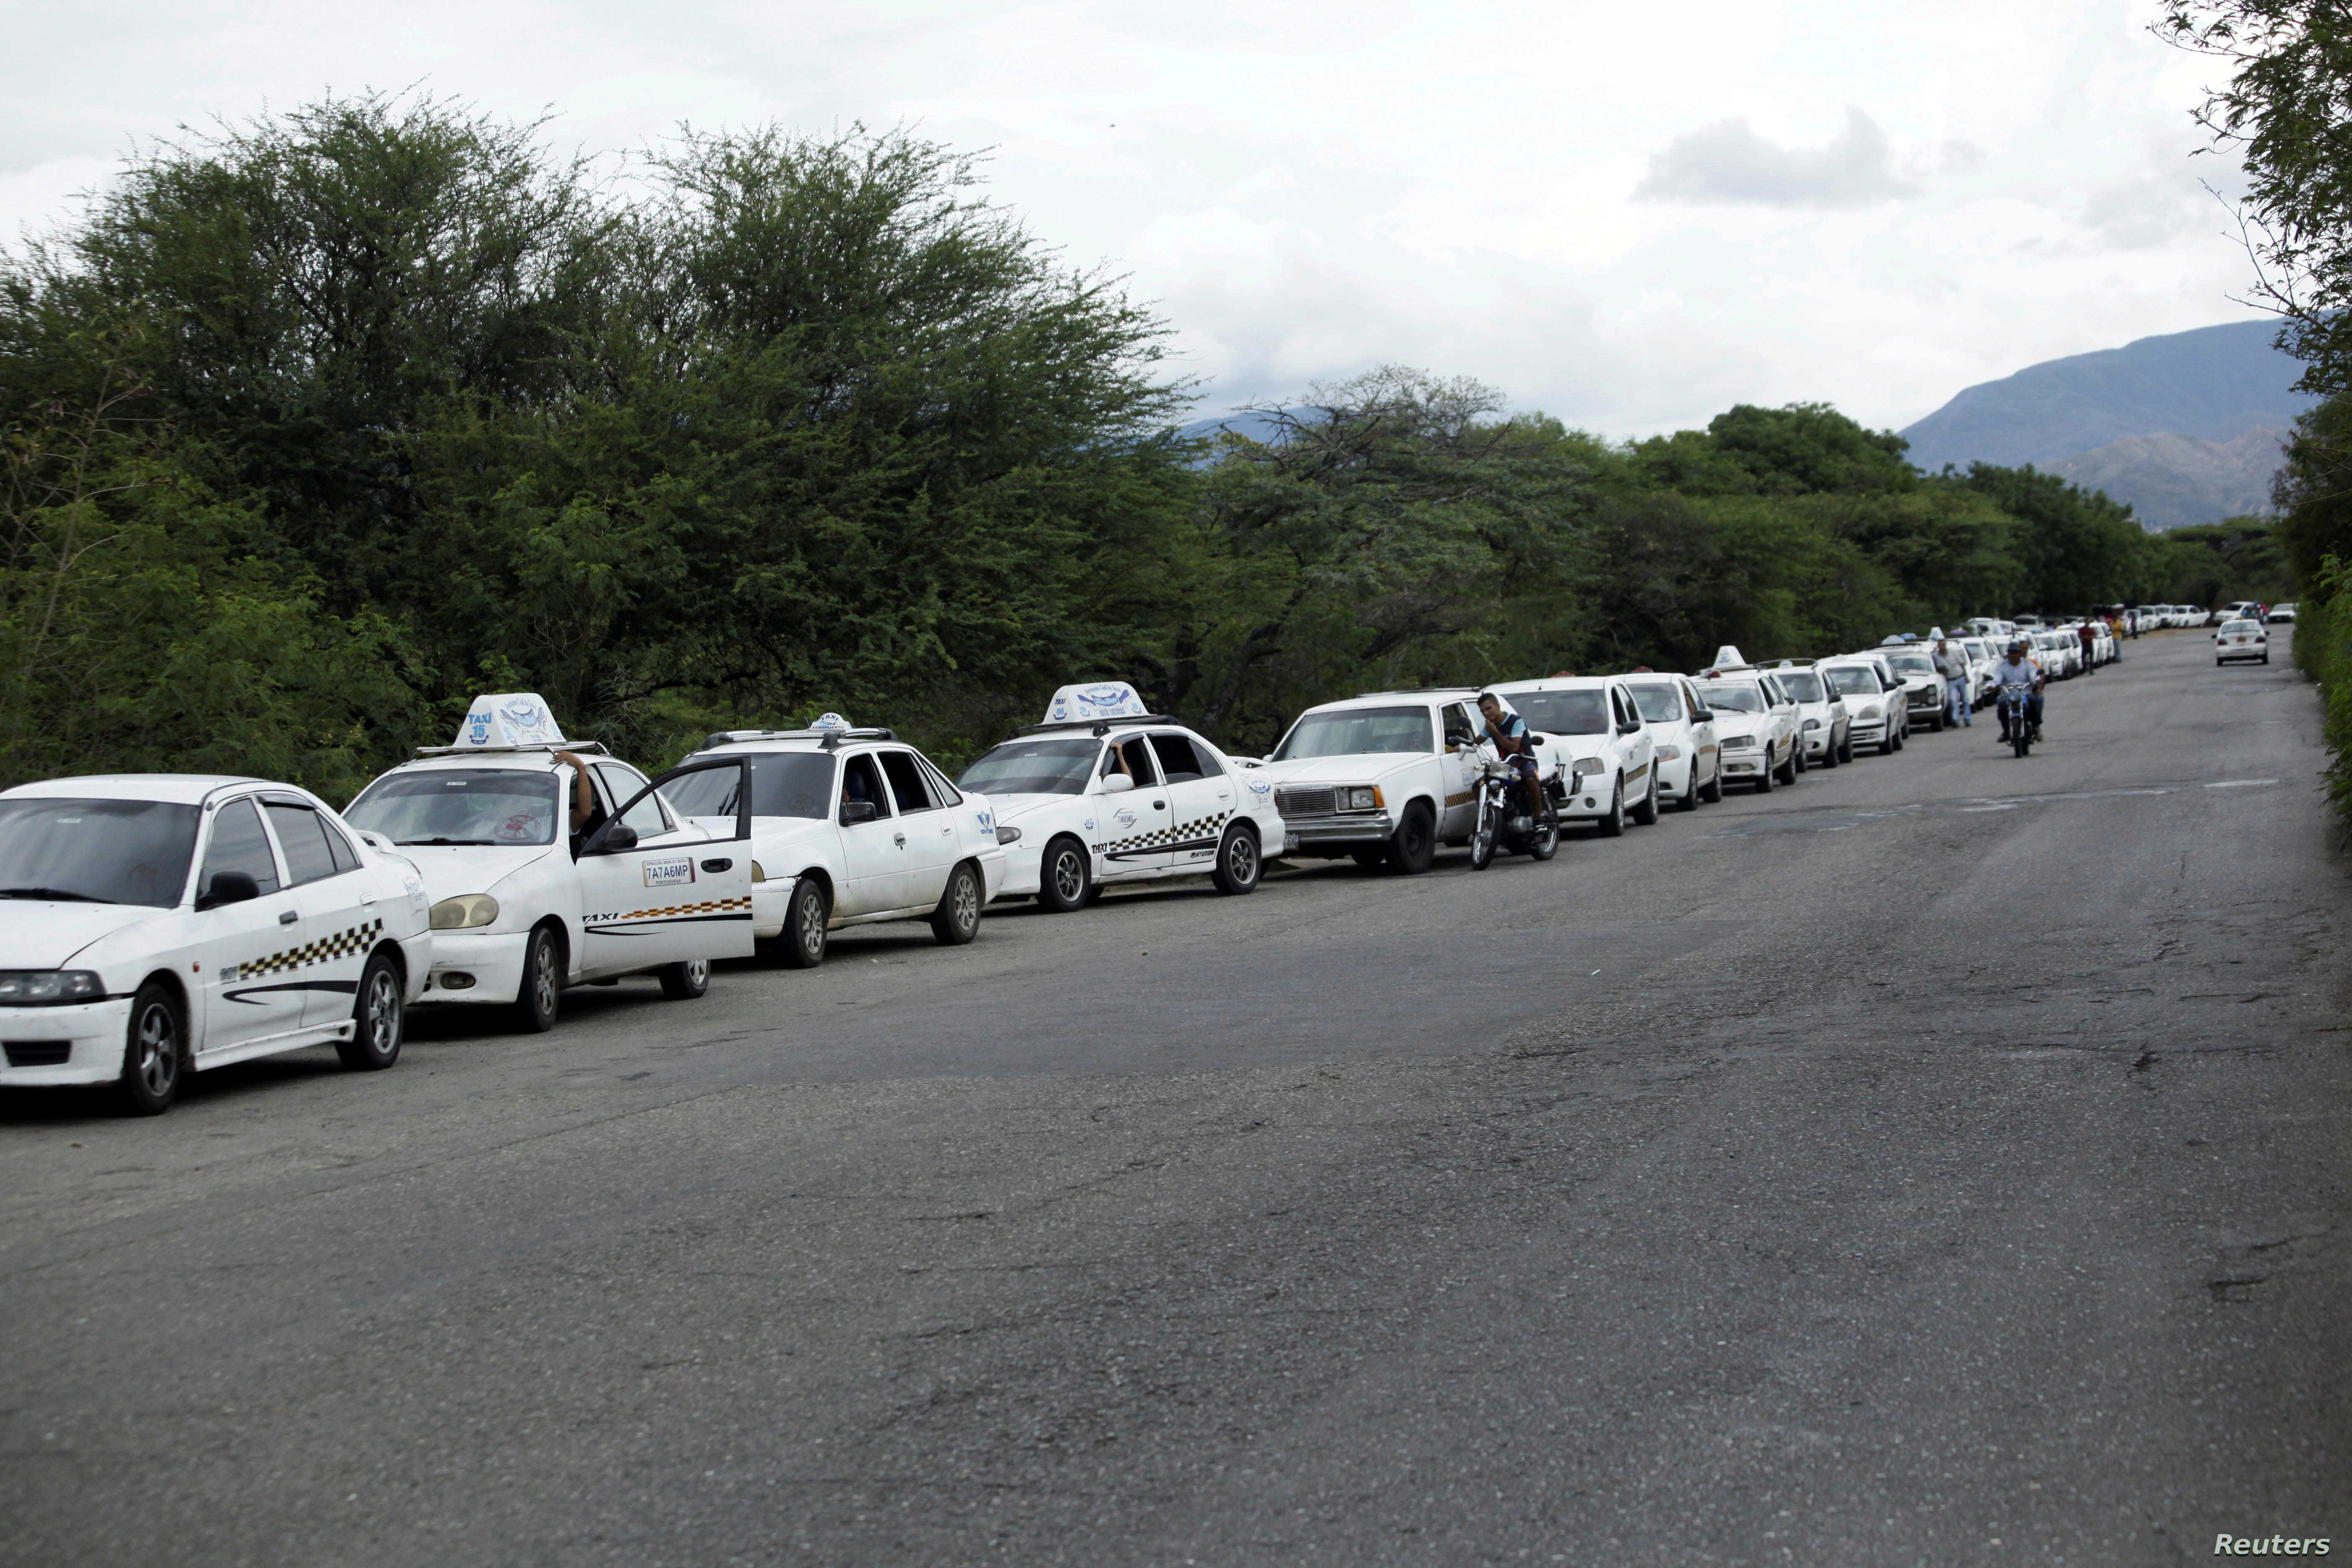 Motorists line up outside a gas station of the Venezuelan state-owned oil company PDVSA in San Antonio, Venezuela, Sept. 4, 2018.